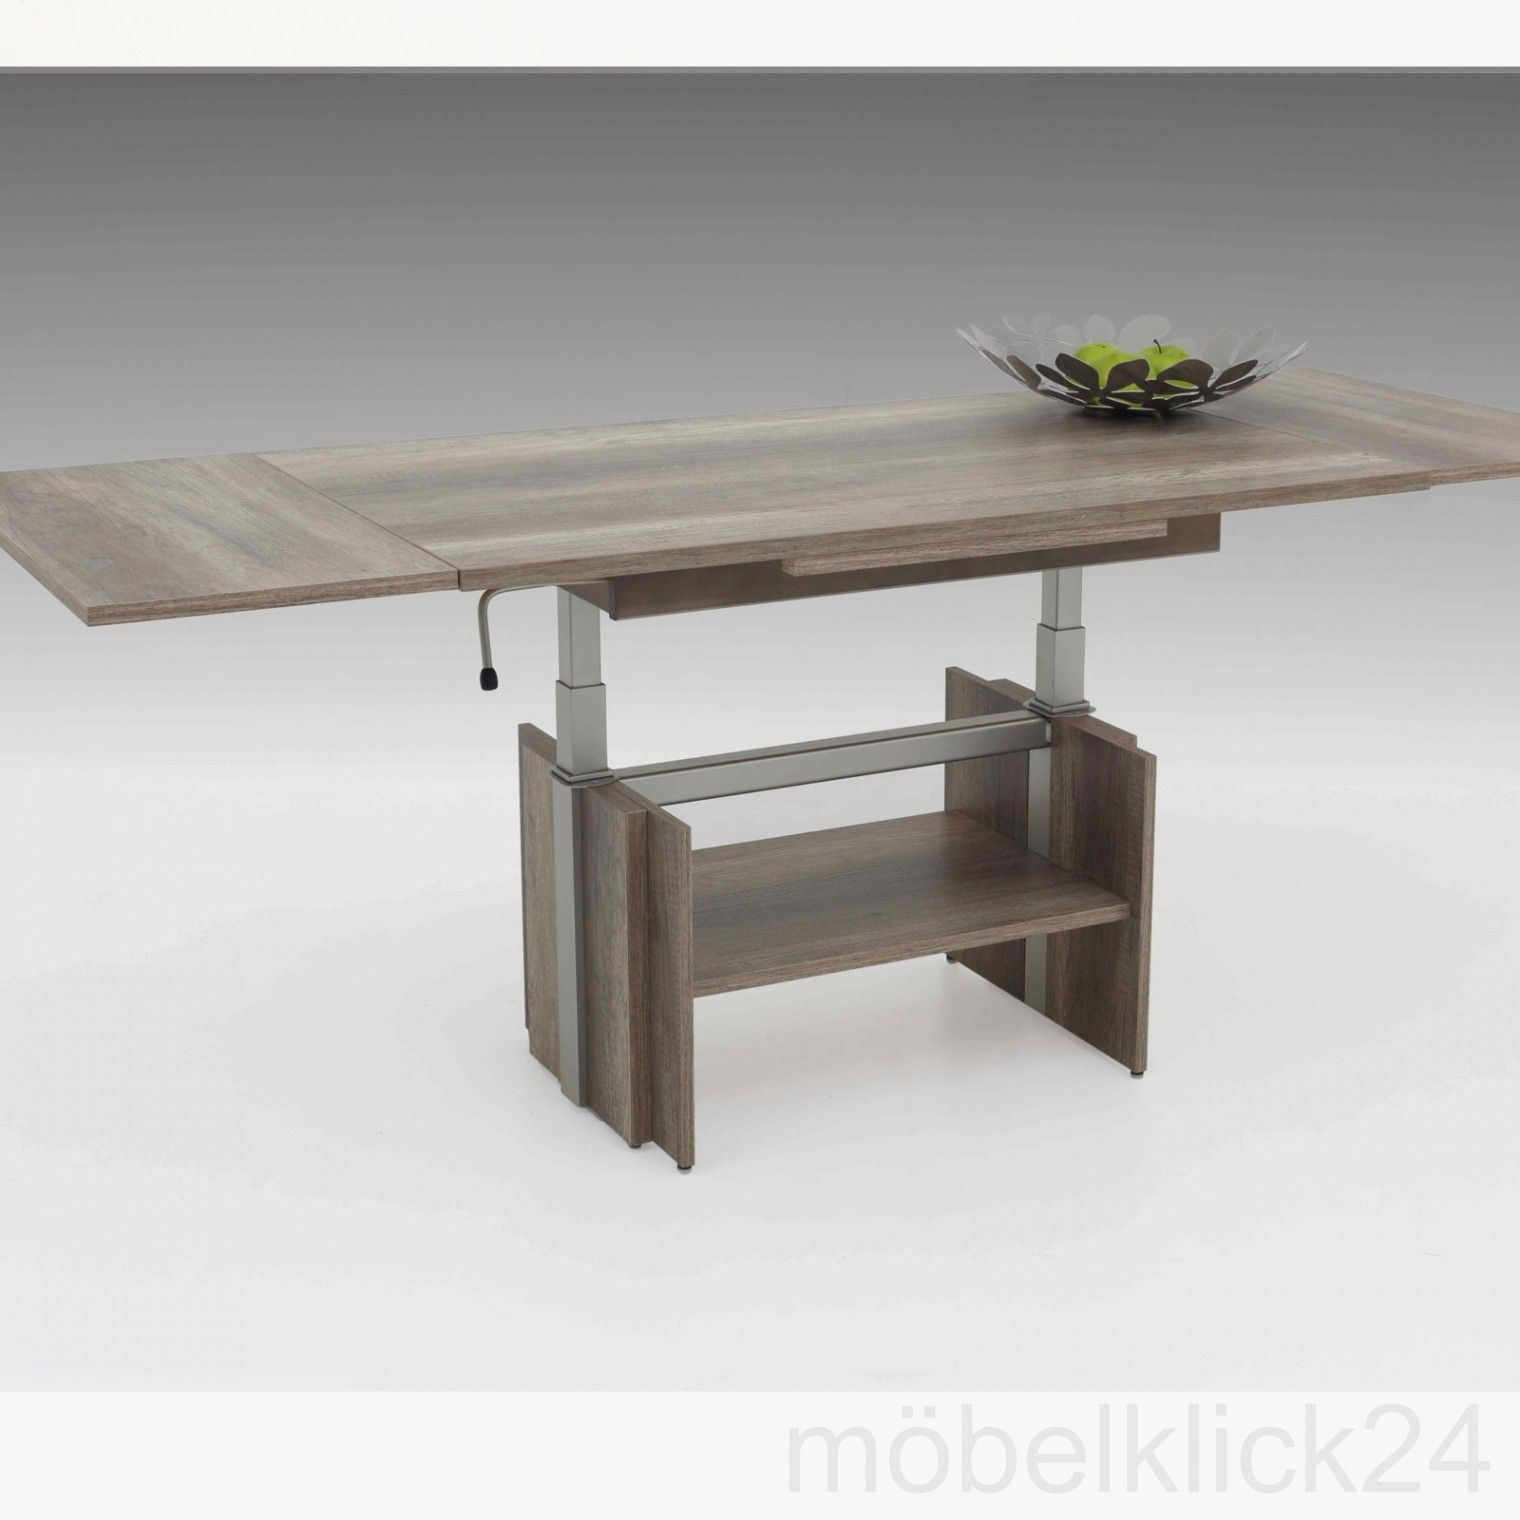 black lift up coffee table - A coffee table can perform a great deal to set the design for any room,... #coffeetables #homedecorideas #homedecor